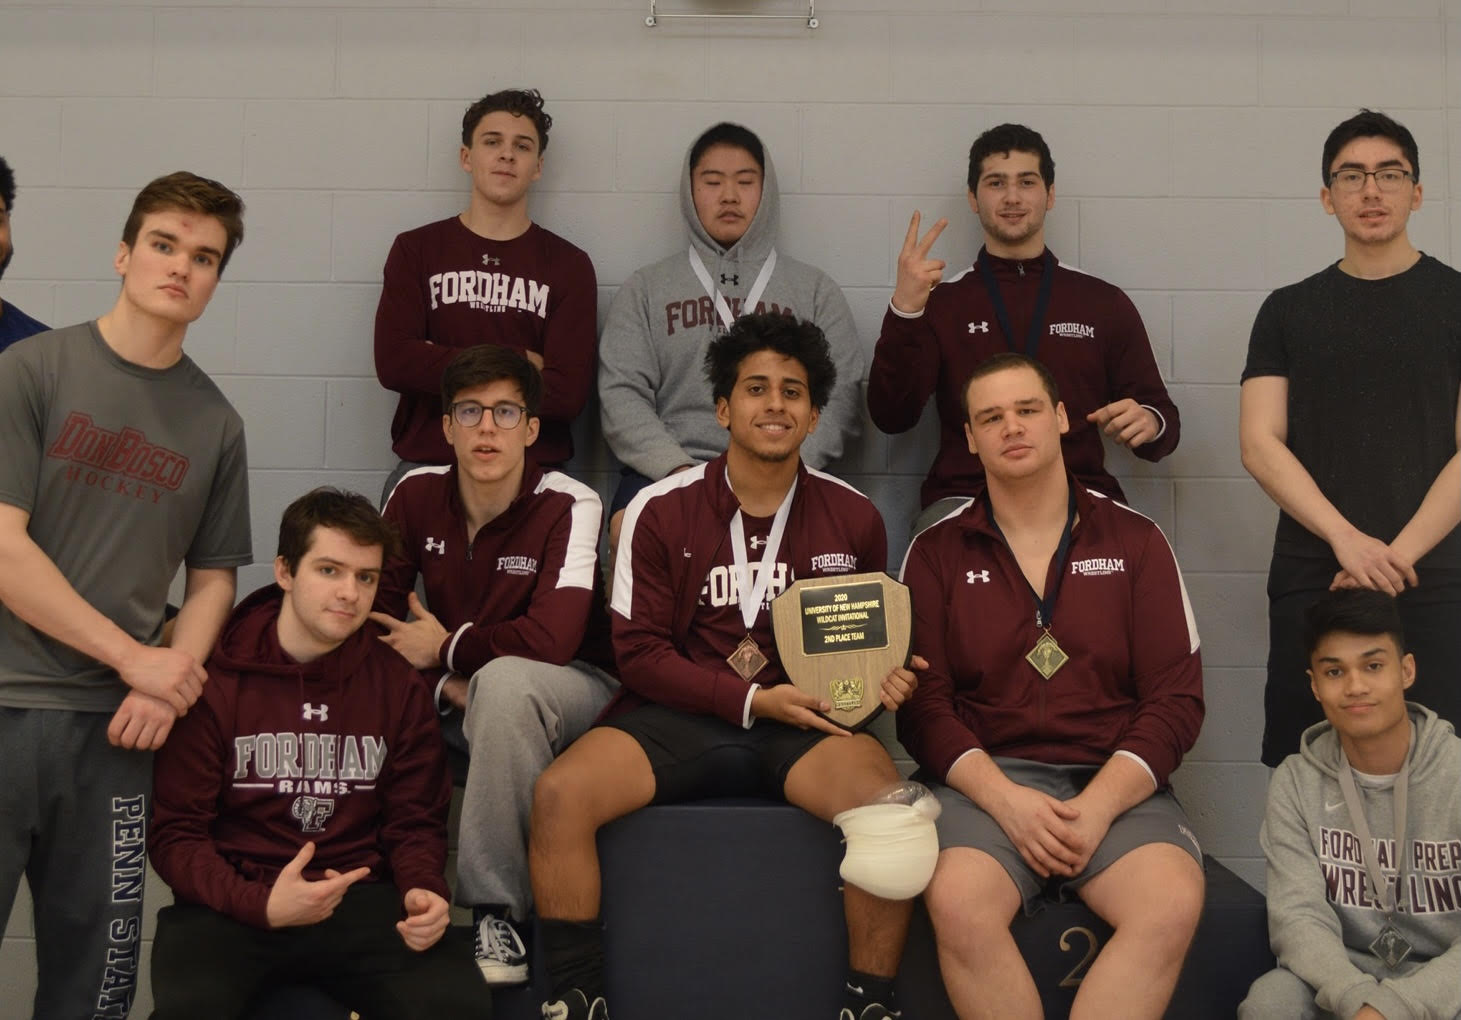 Juan Rodriguez poses with the rest of the Fordham men's wrestling team